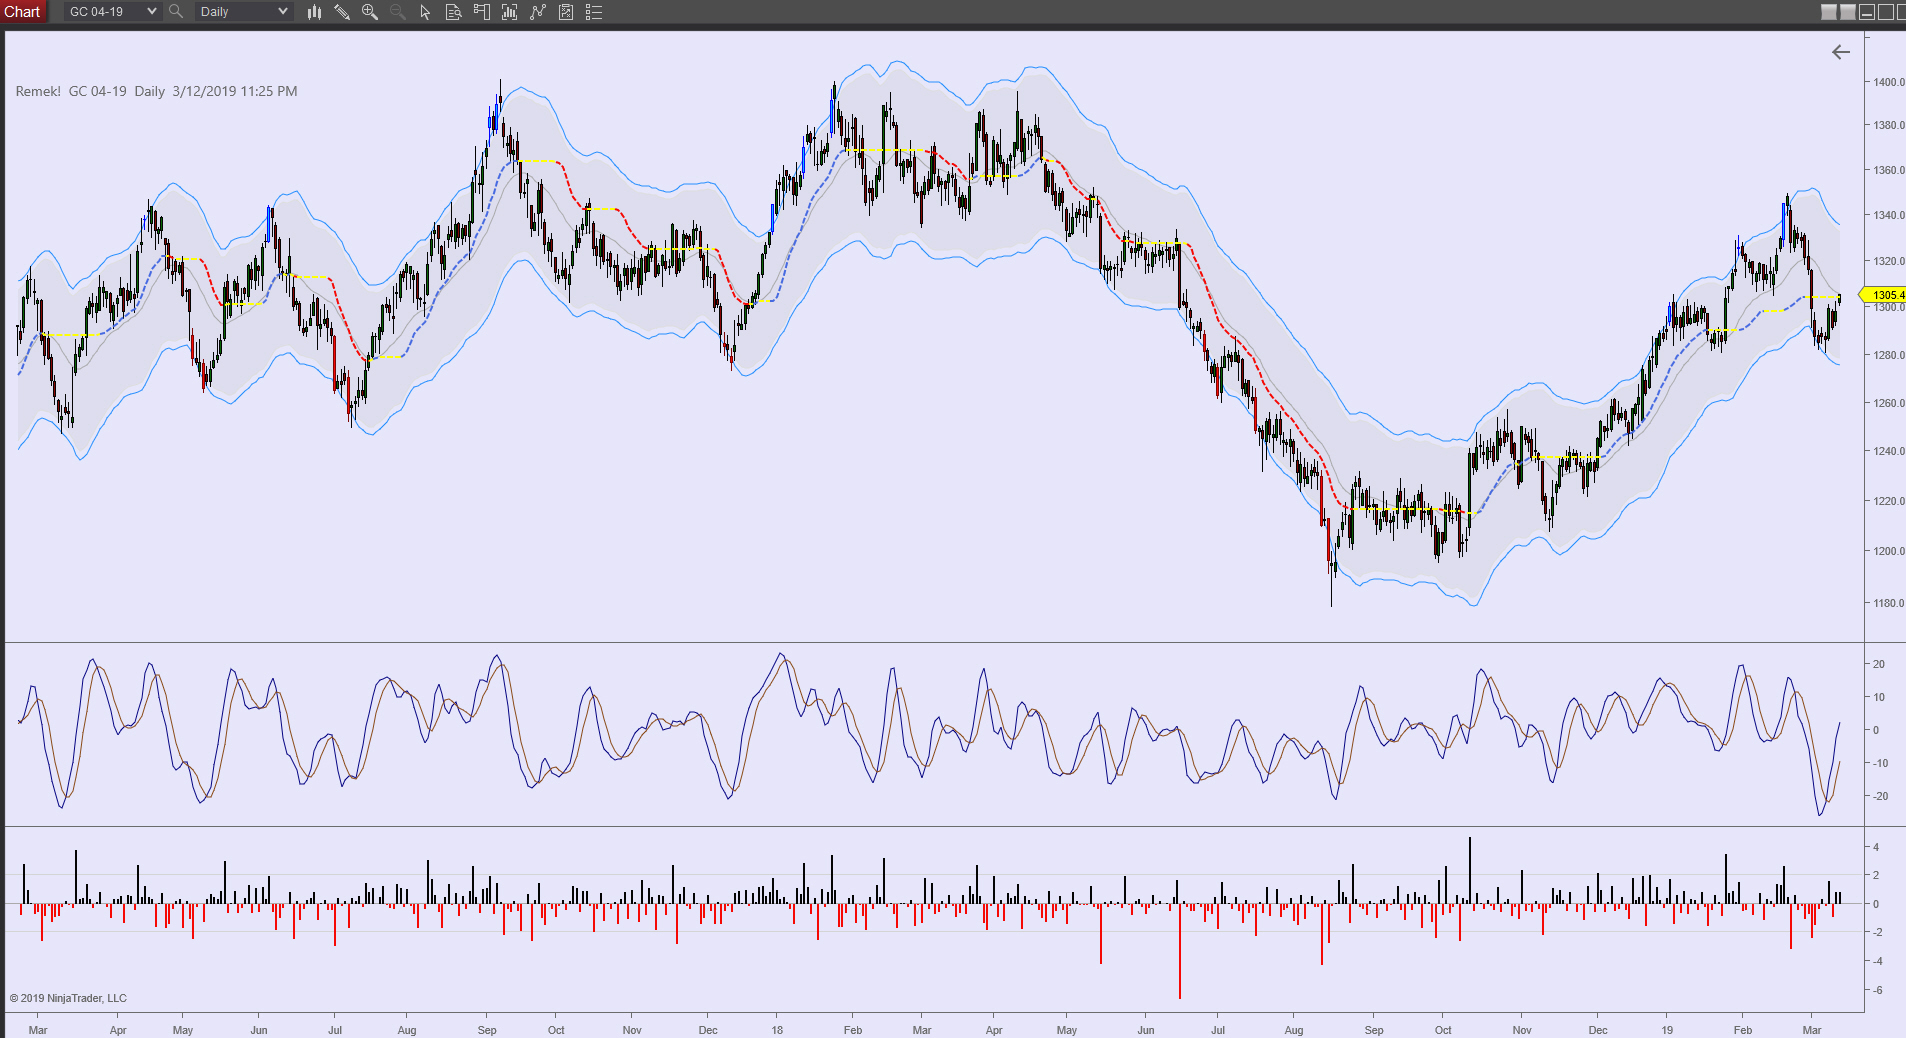 GC Daily